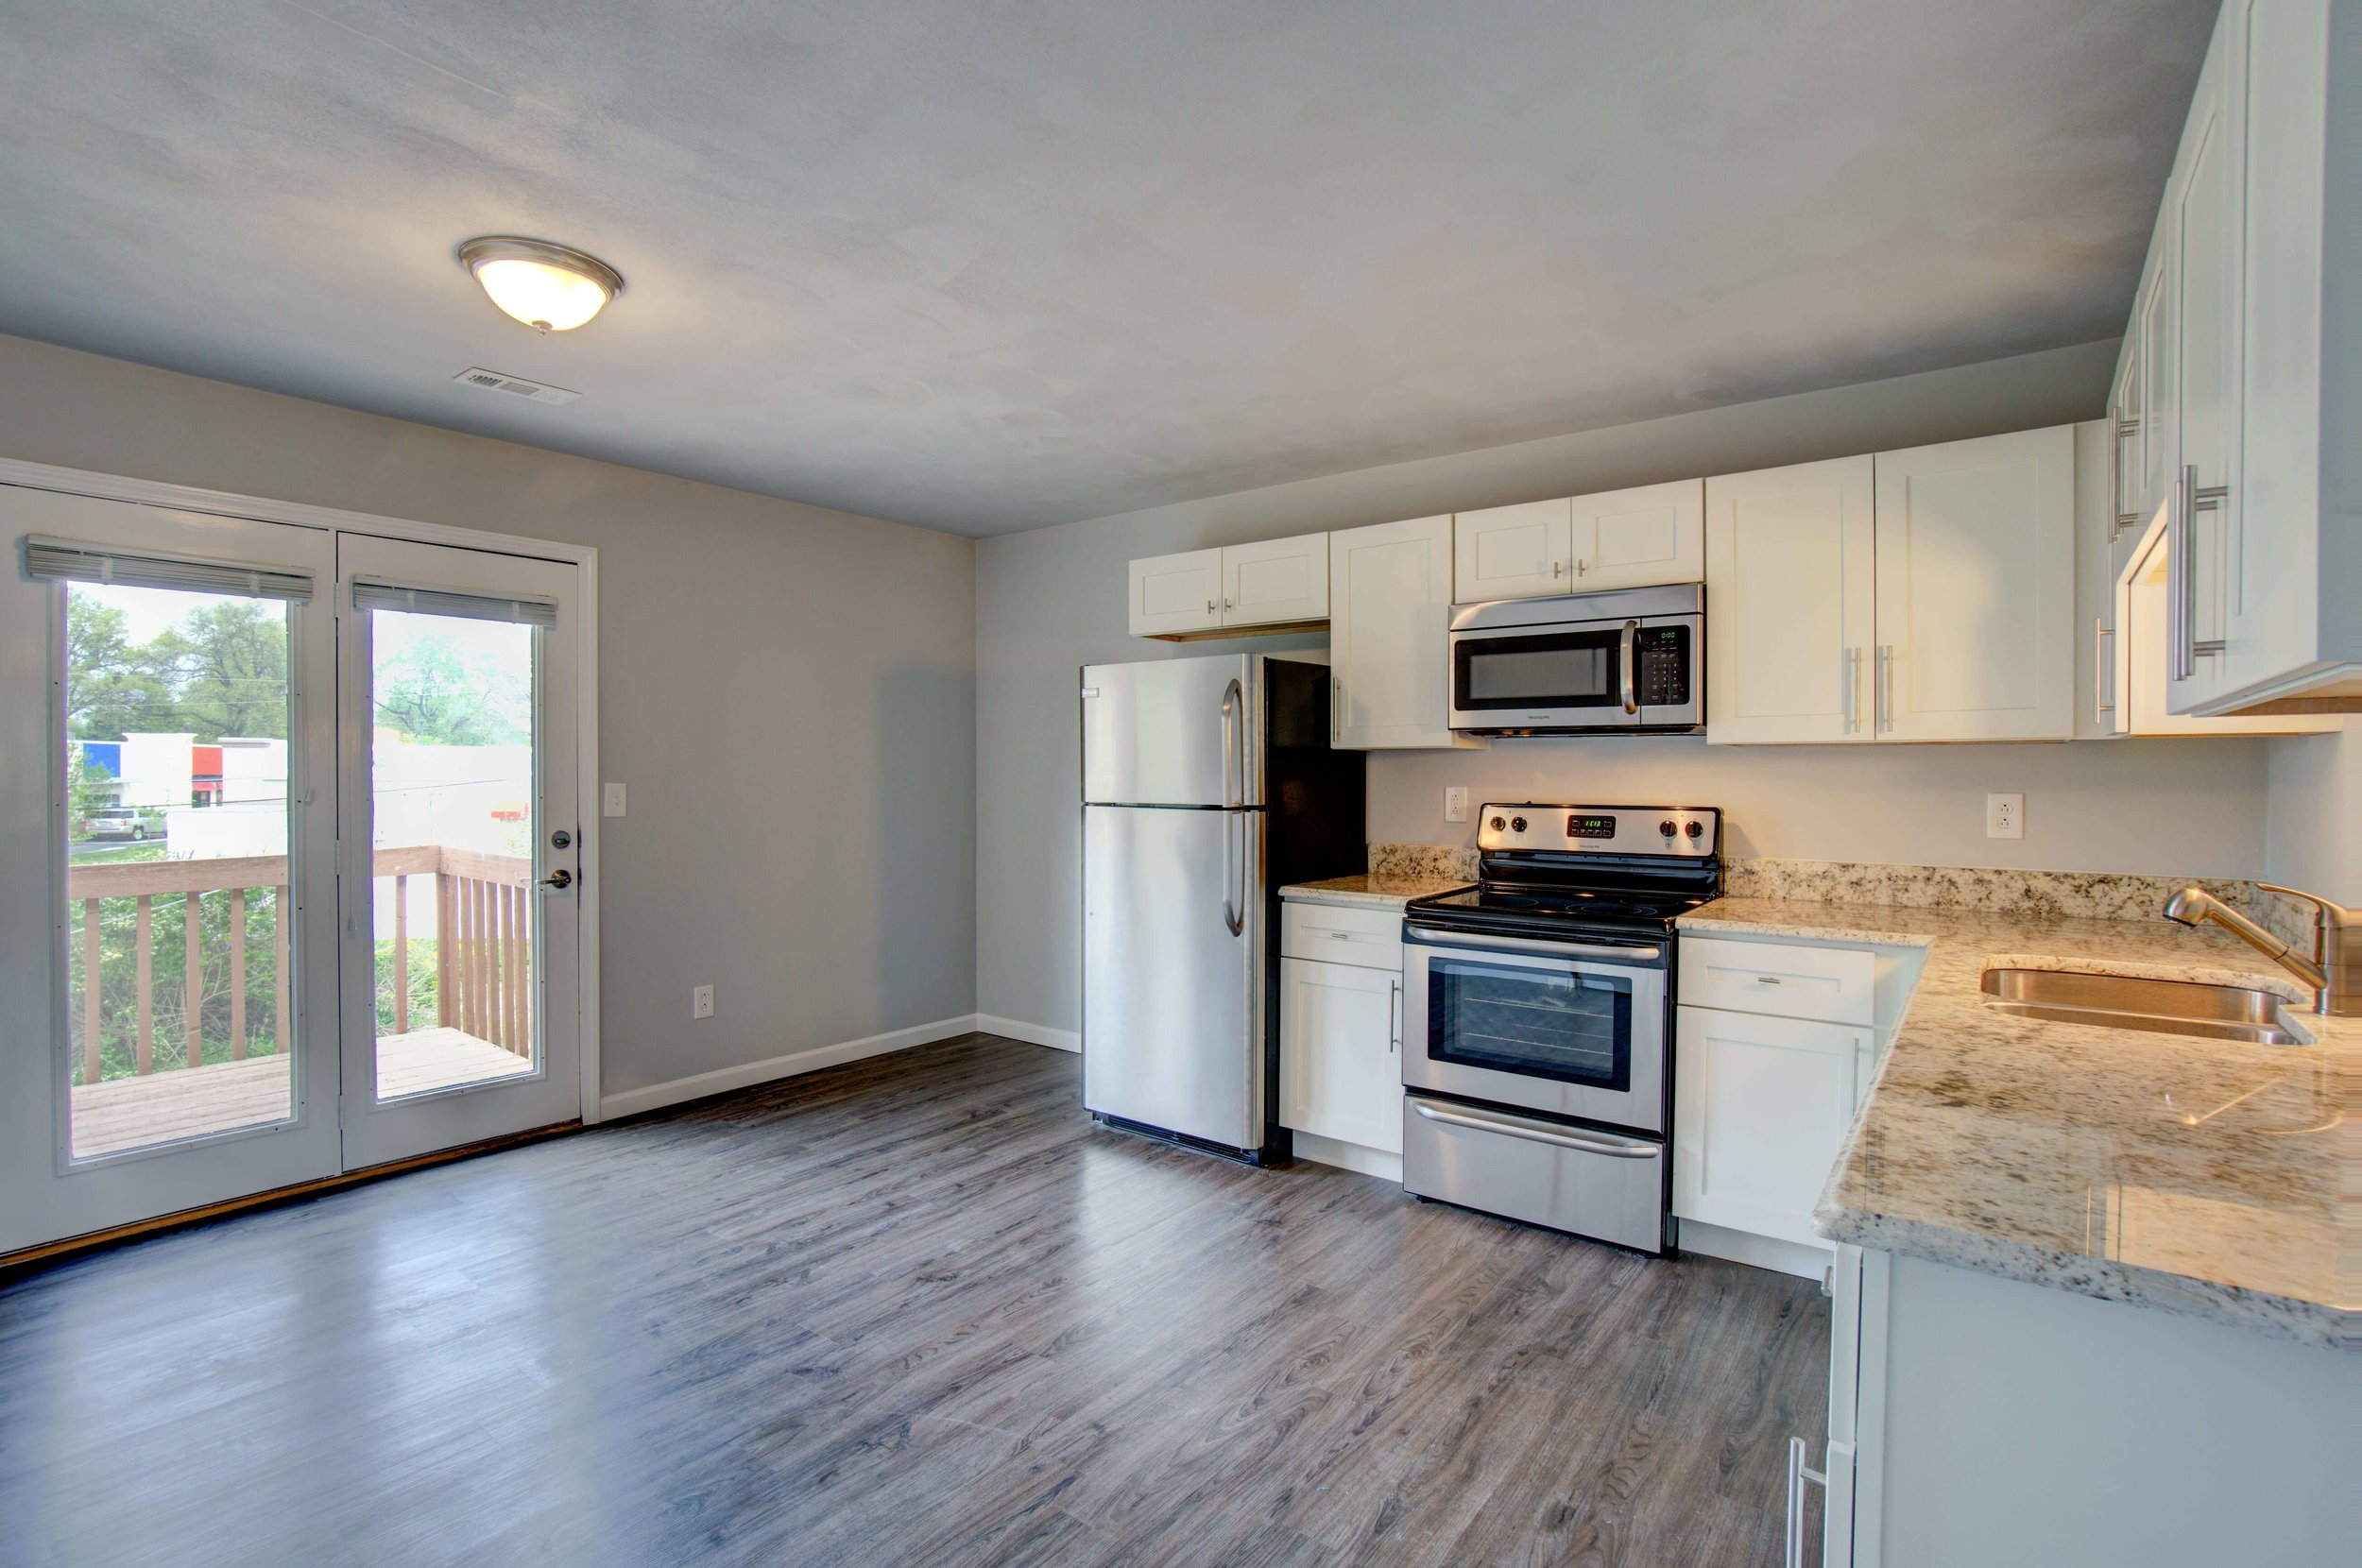 The Hyde - 2 Bed | 2 Bath | 1200 SF$950 Per MonthNo confirmed availability.